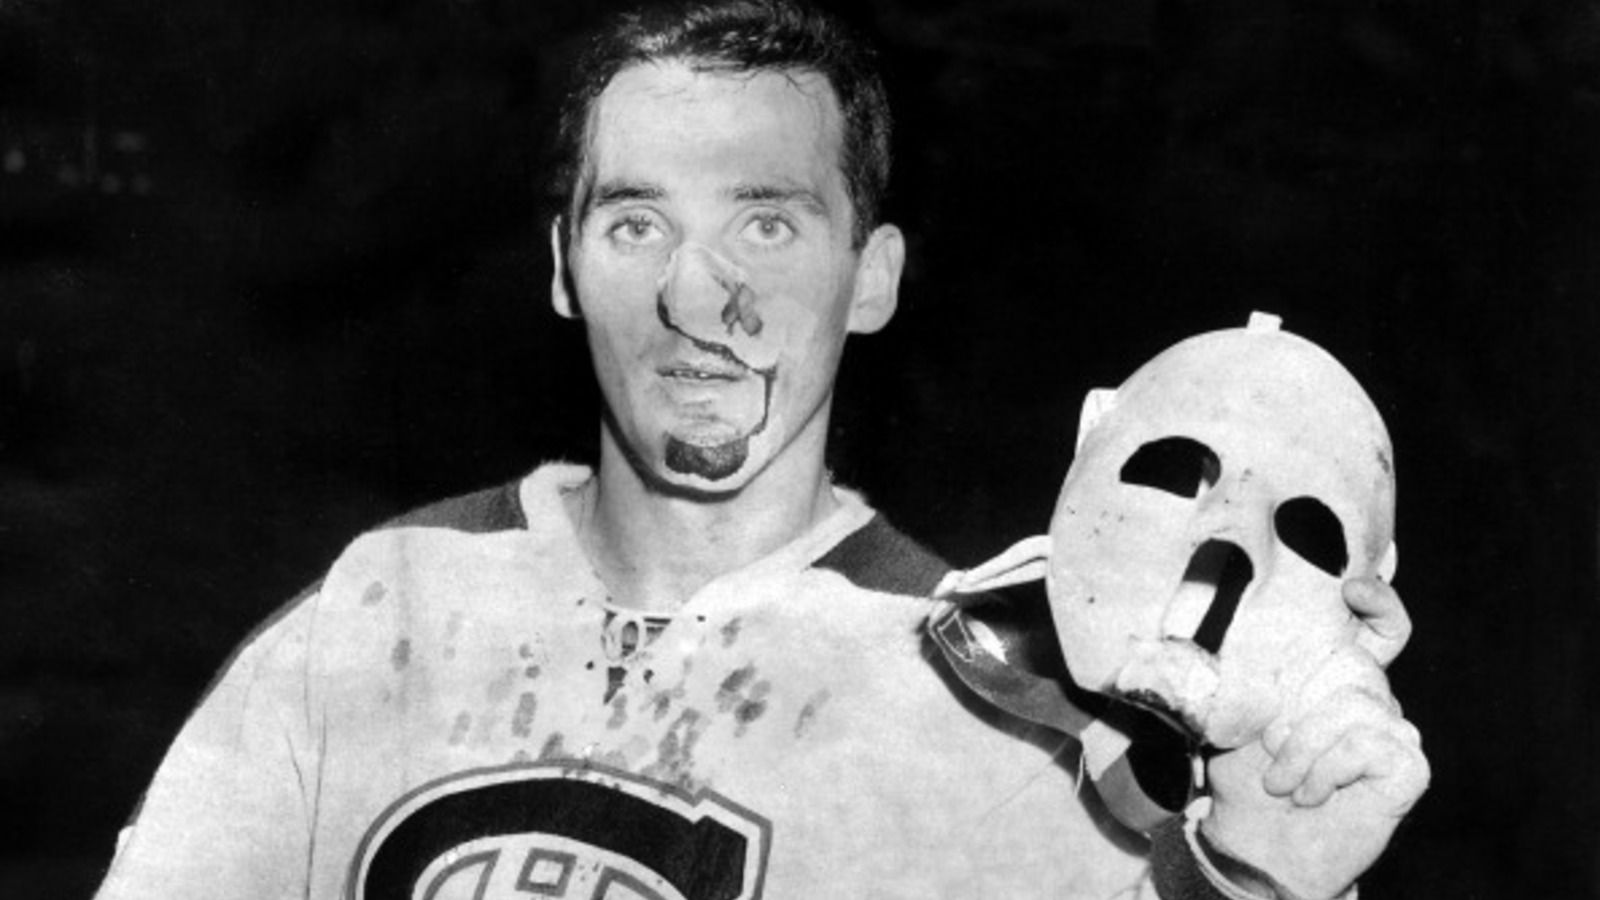 Jacques Plante: The Aesthetic: Goalie Masks Move From Pure Protection To